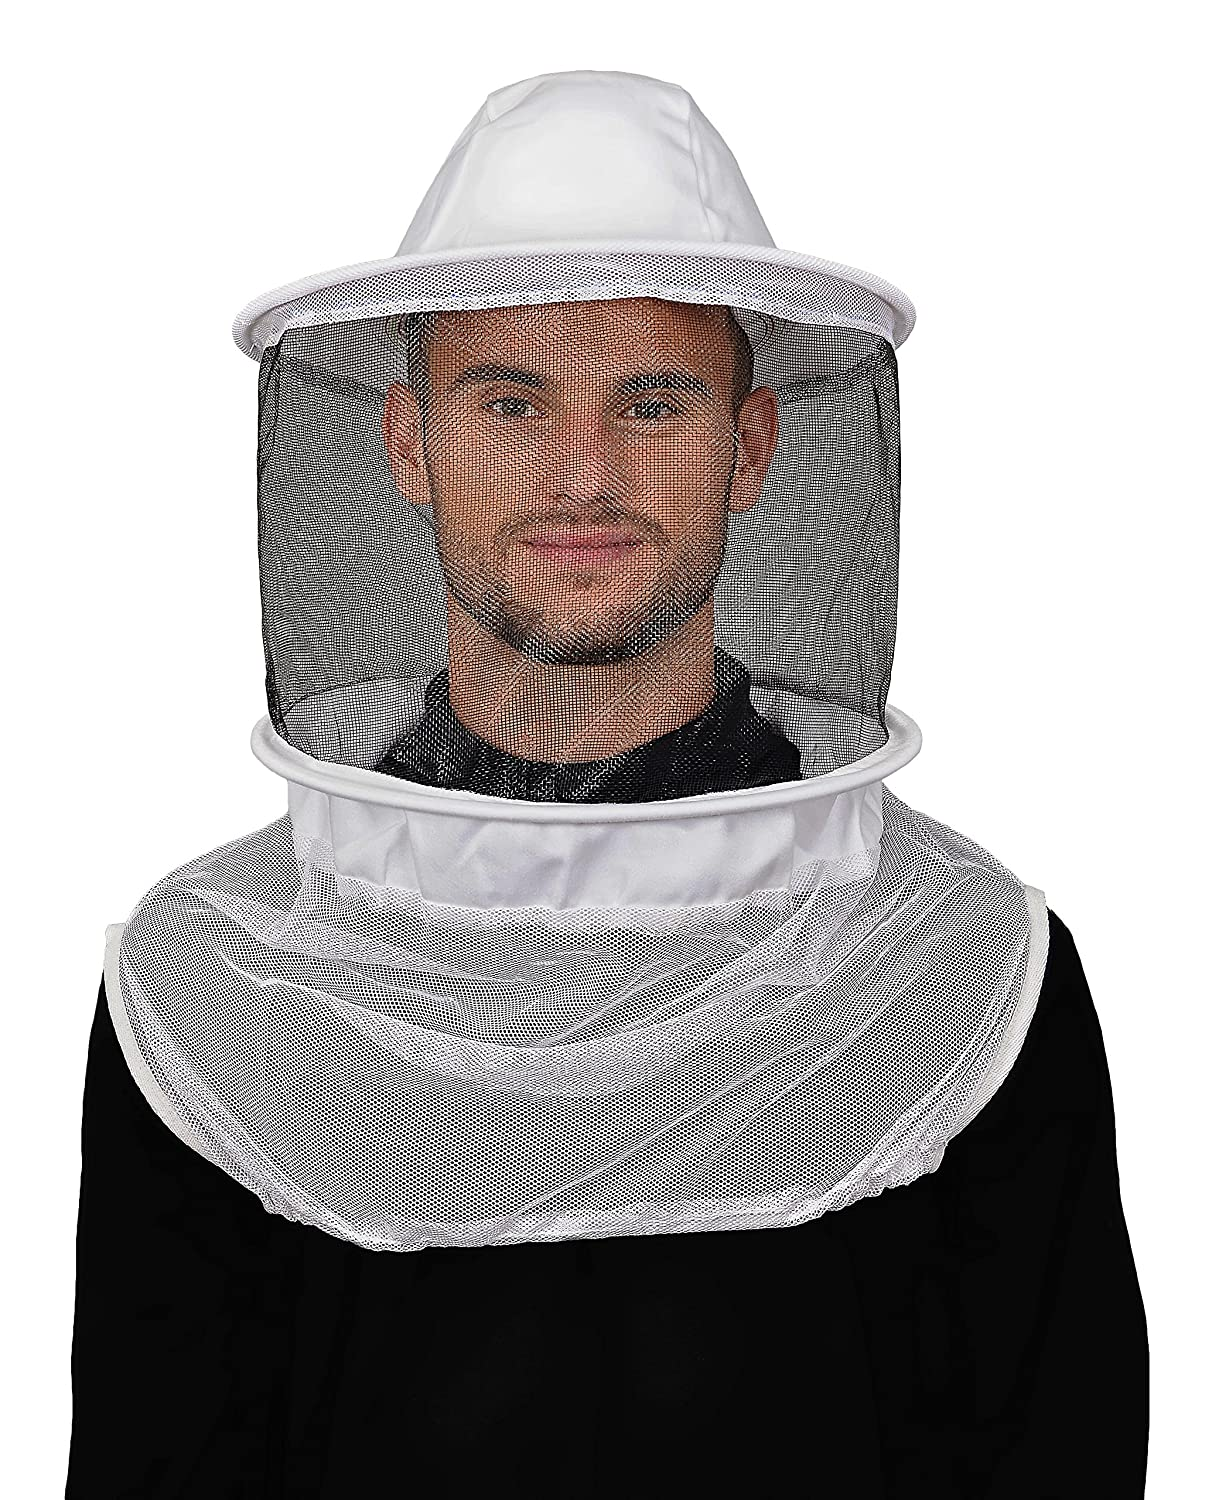 Humble Bee 210-ST Polycotton Beekeeping Veil with Round Hat Sigma Lux